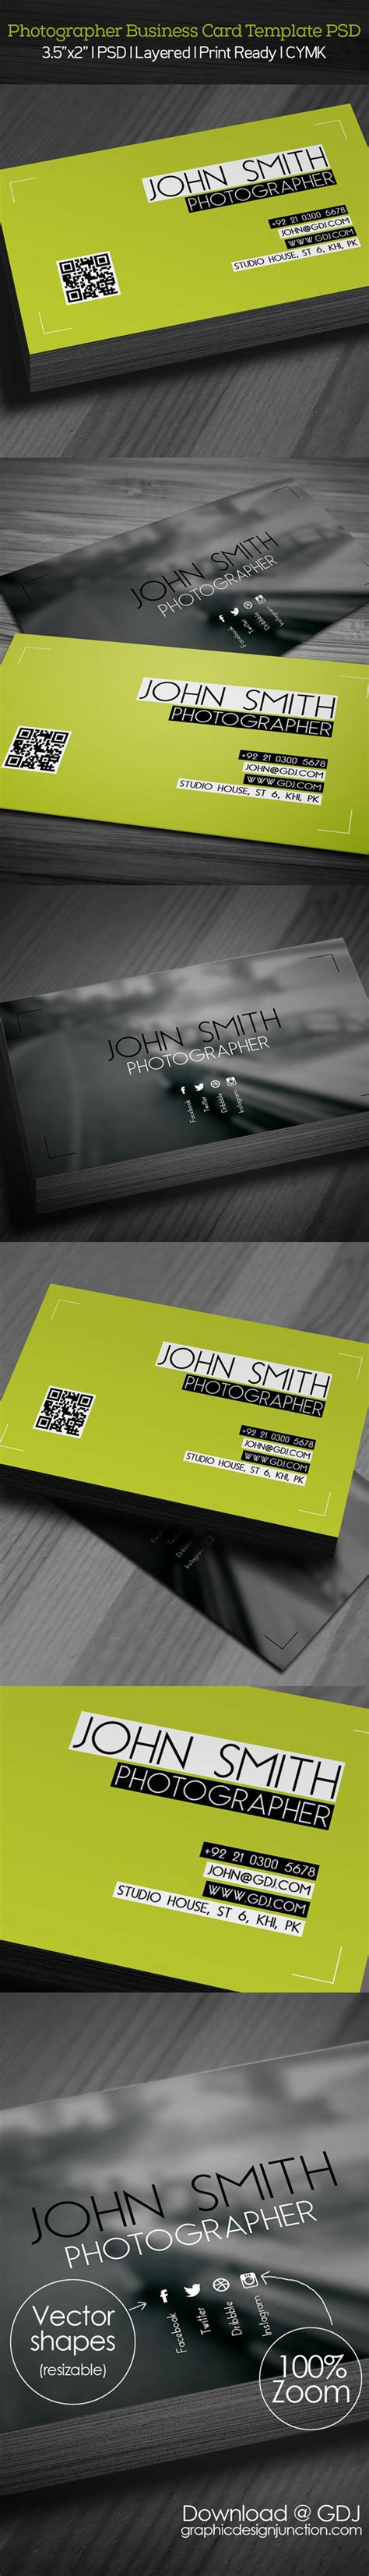 Photography Business Card Template Psd by Free Photographer Business Card Psd Template Freebies